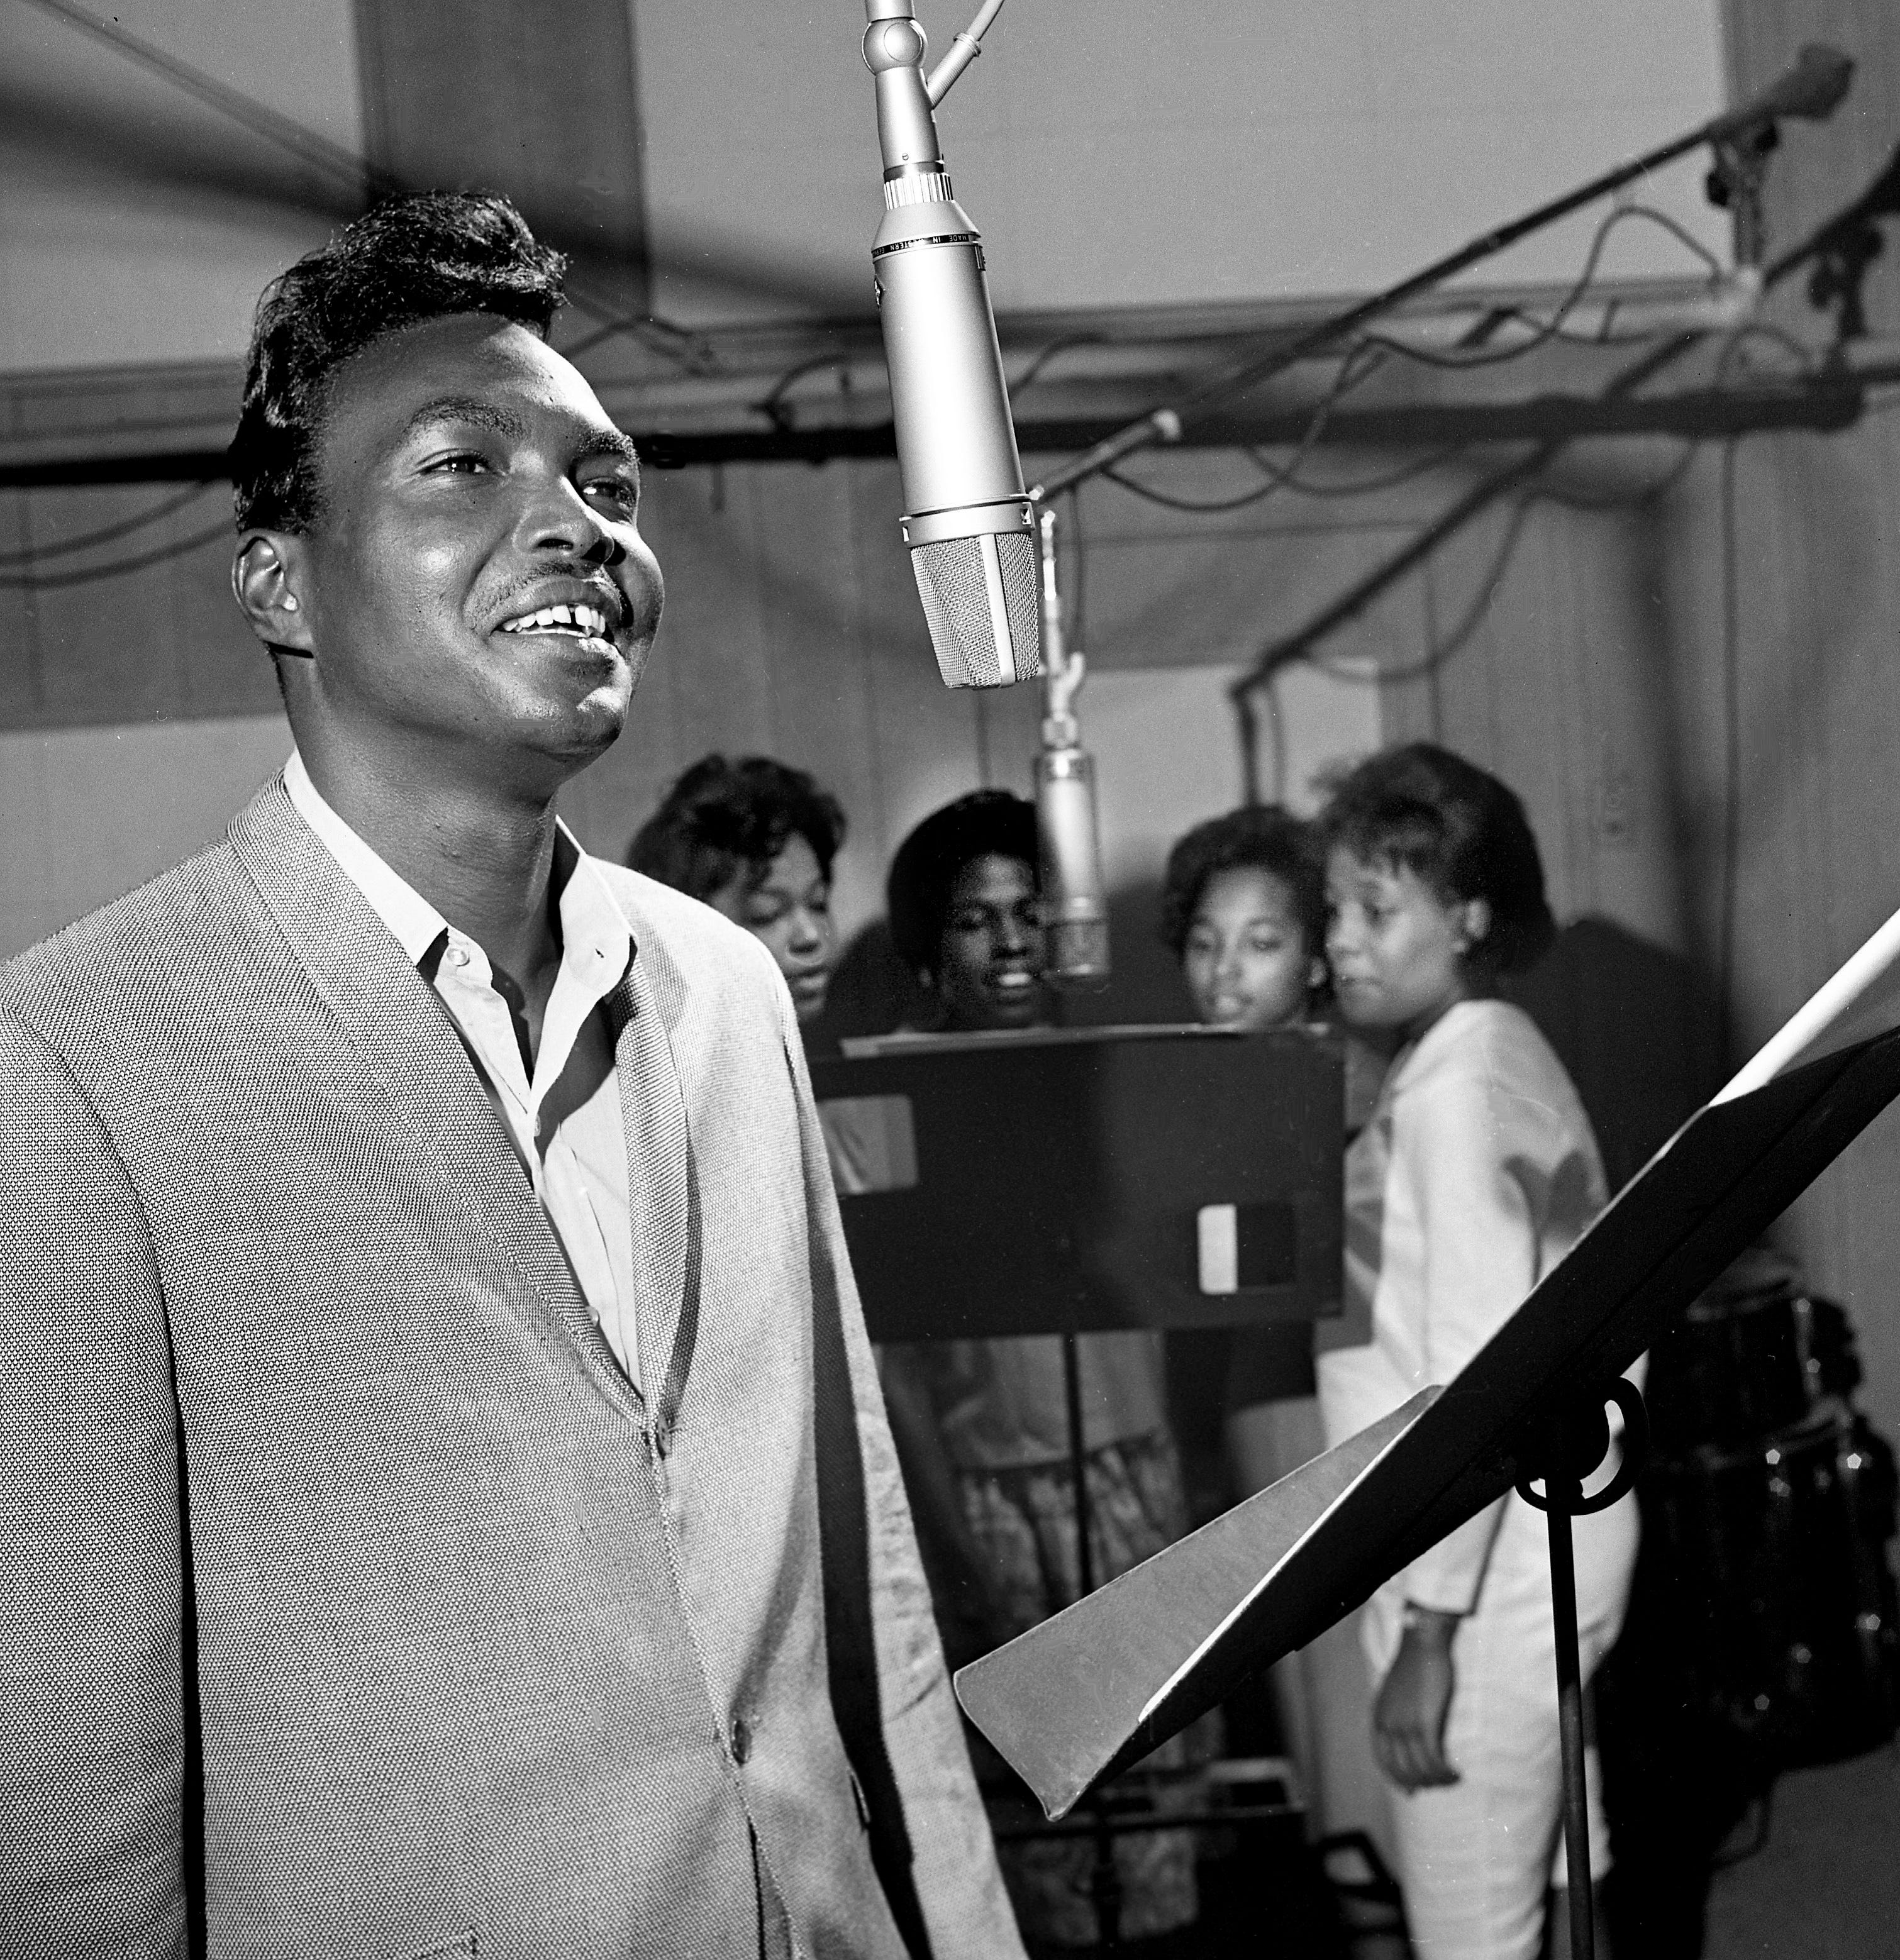 """Arthur Alexander, a 23-year-old ex-bellhop from Sheffield, Ala., is in a recording session at Bradley's Studio June 27, 1963. Alexander walked into the offices of Dot Records in Nashville January of 1962 with a dub tape of """"You Better Move On,"""" now a smash hit."""